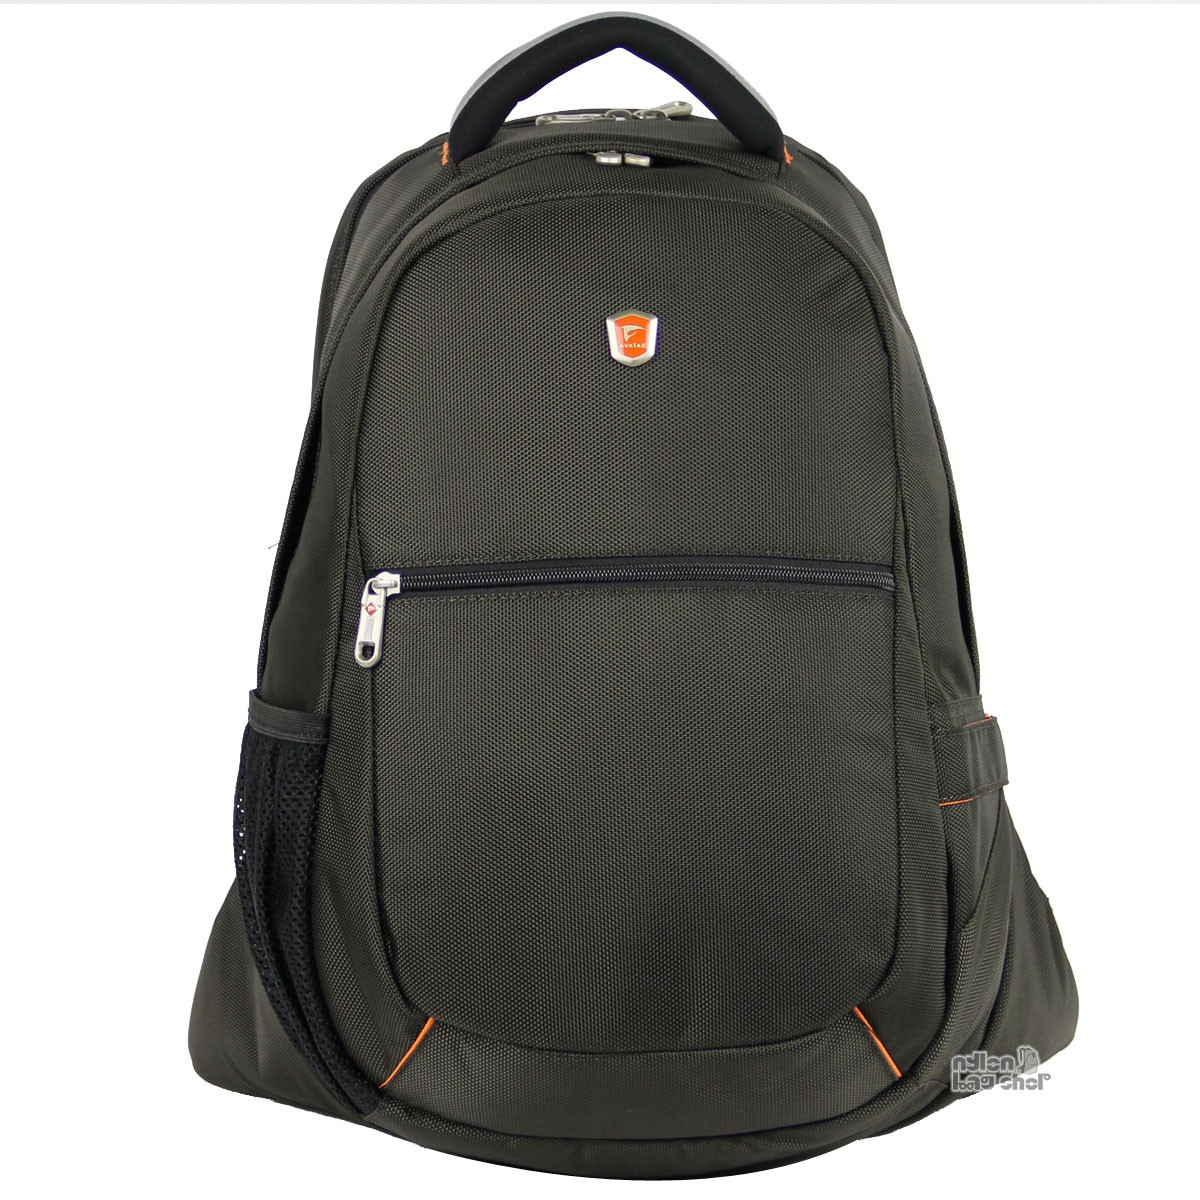 Backpacks With Laptop Compartments 98X9Qar9